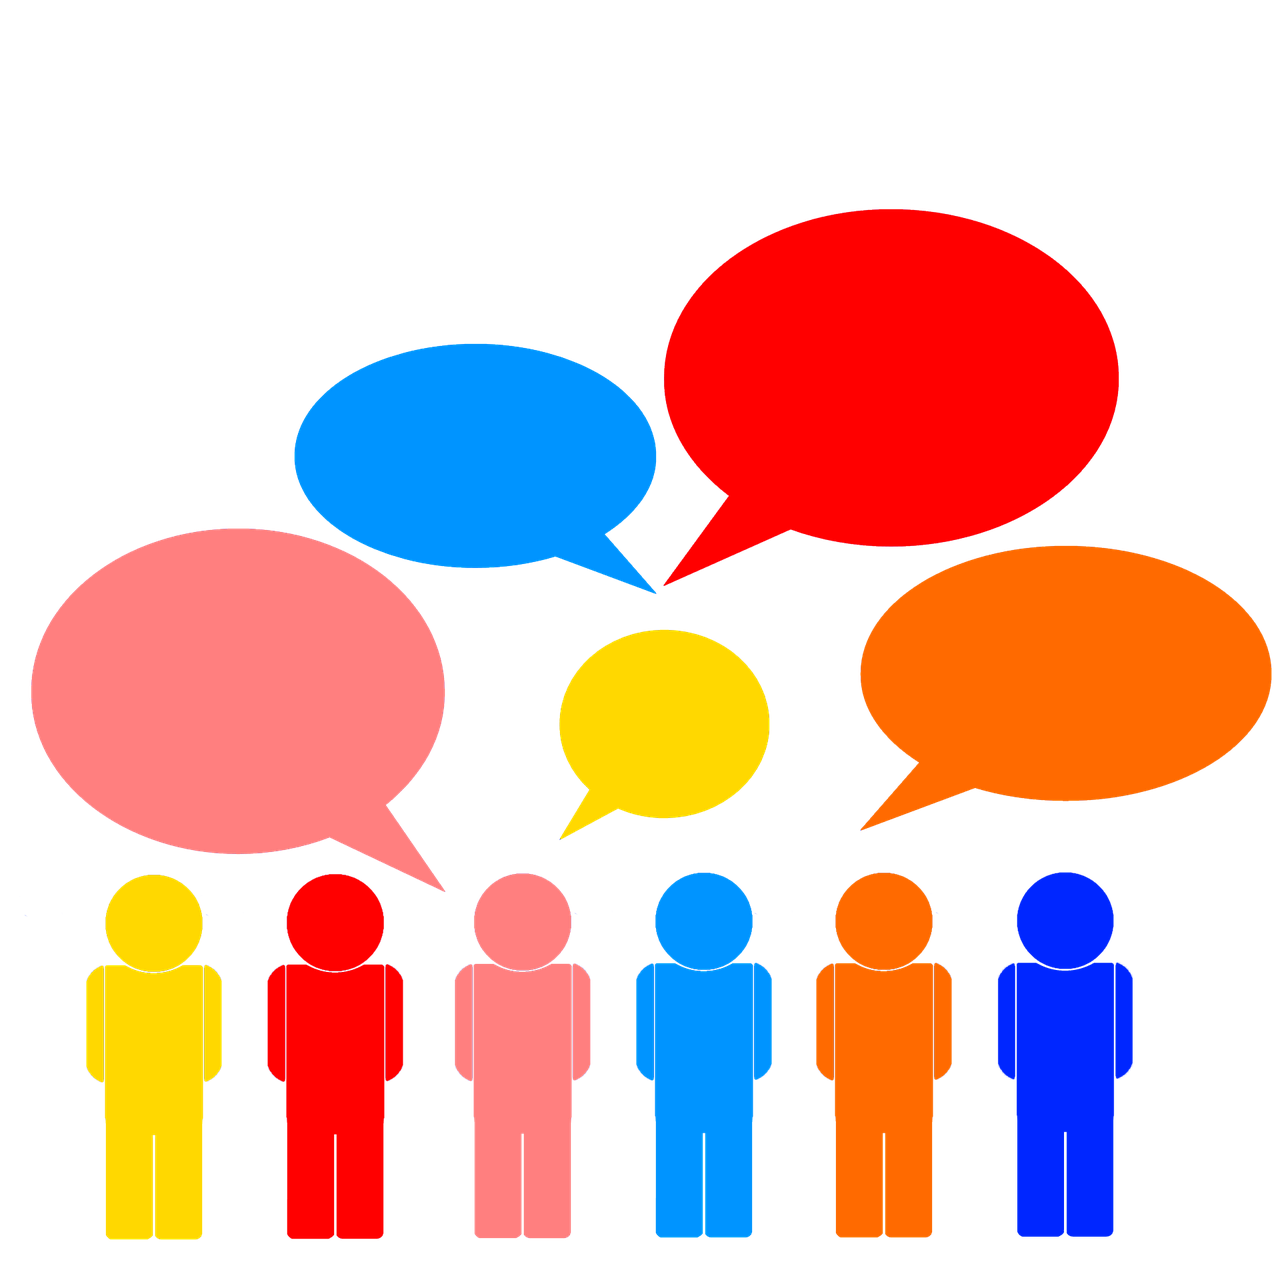 Conversation clipart topic. Using board thought topics